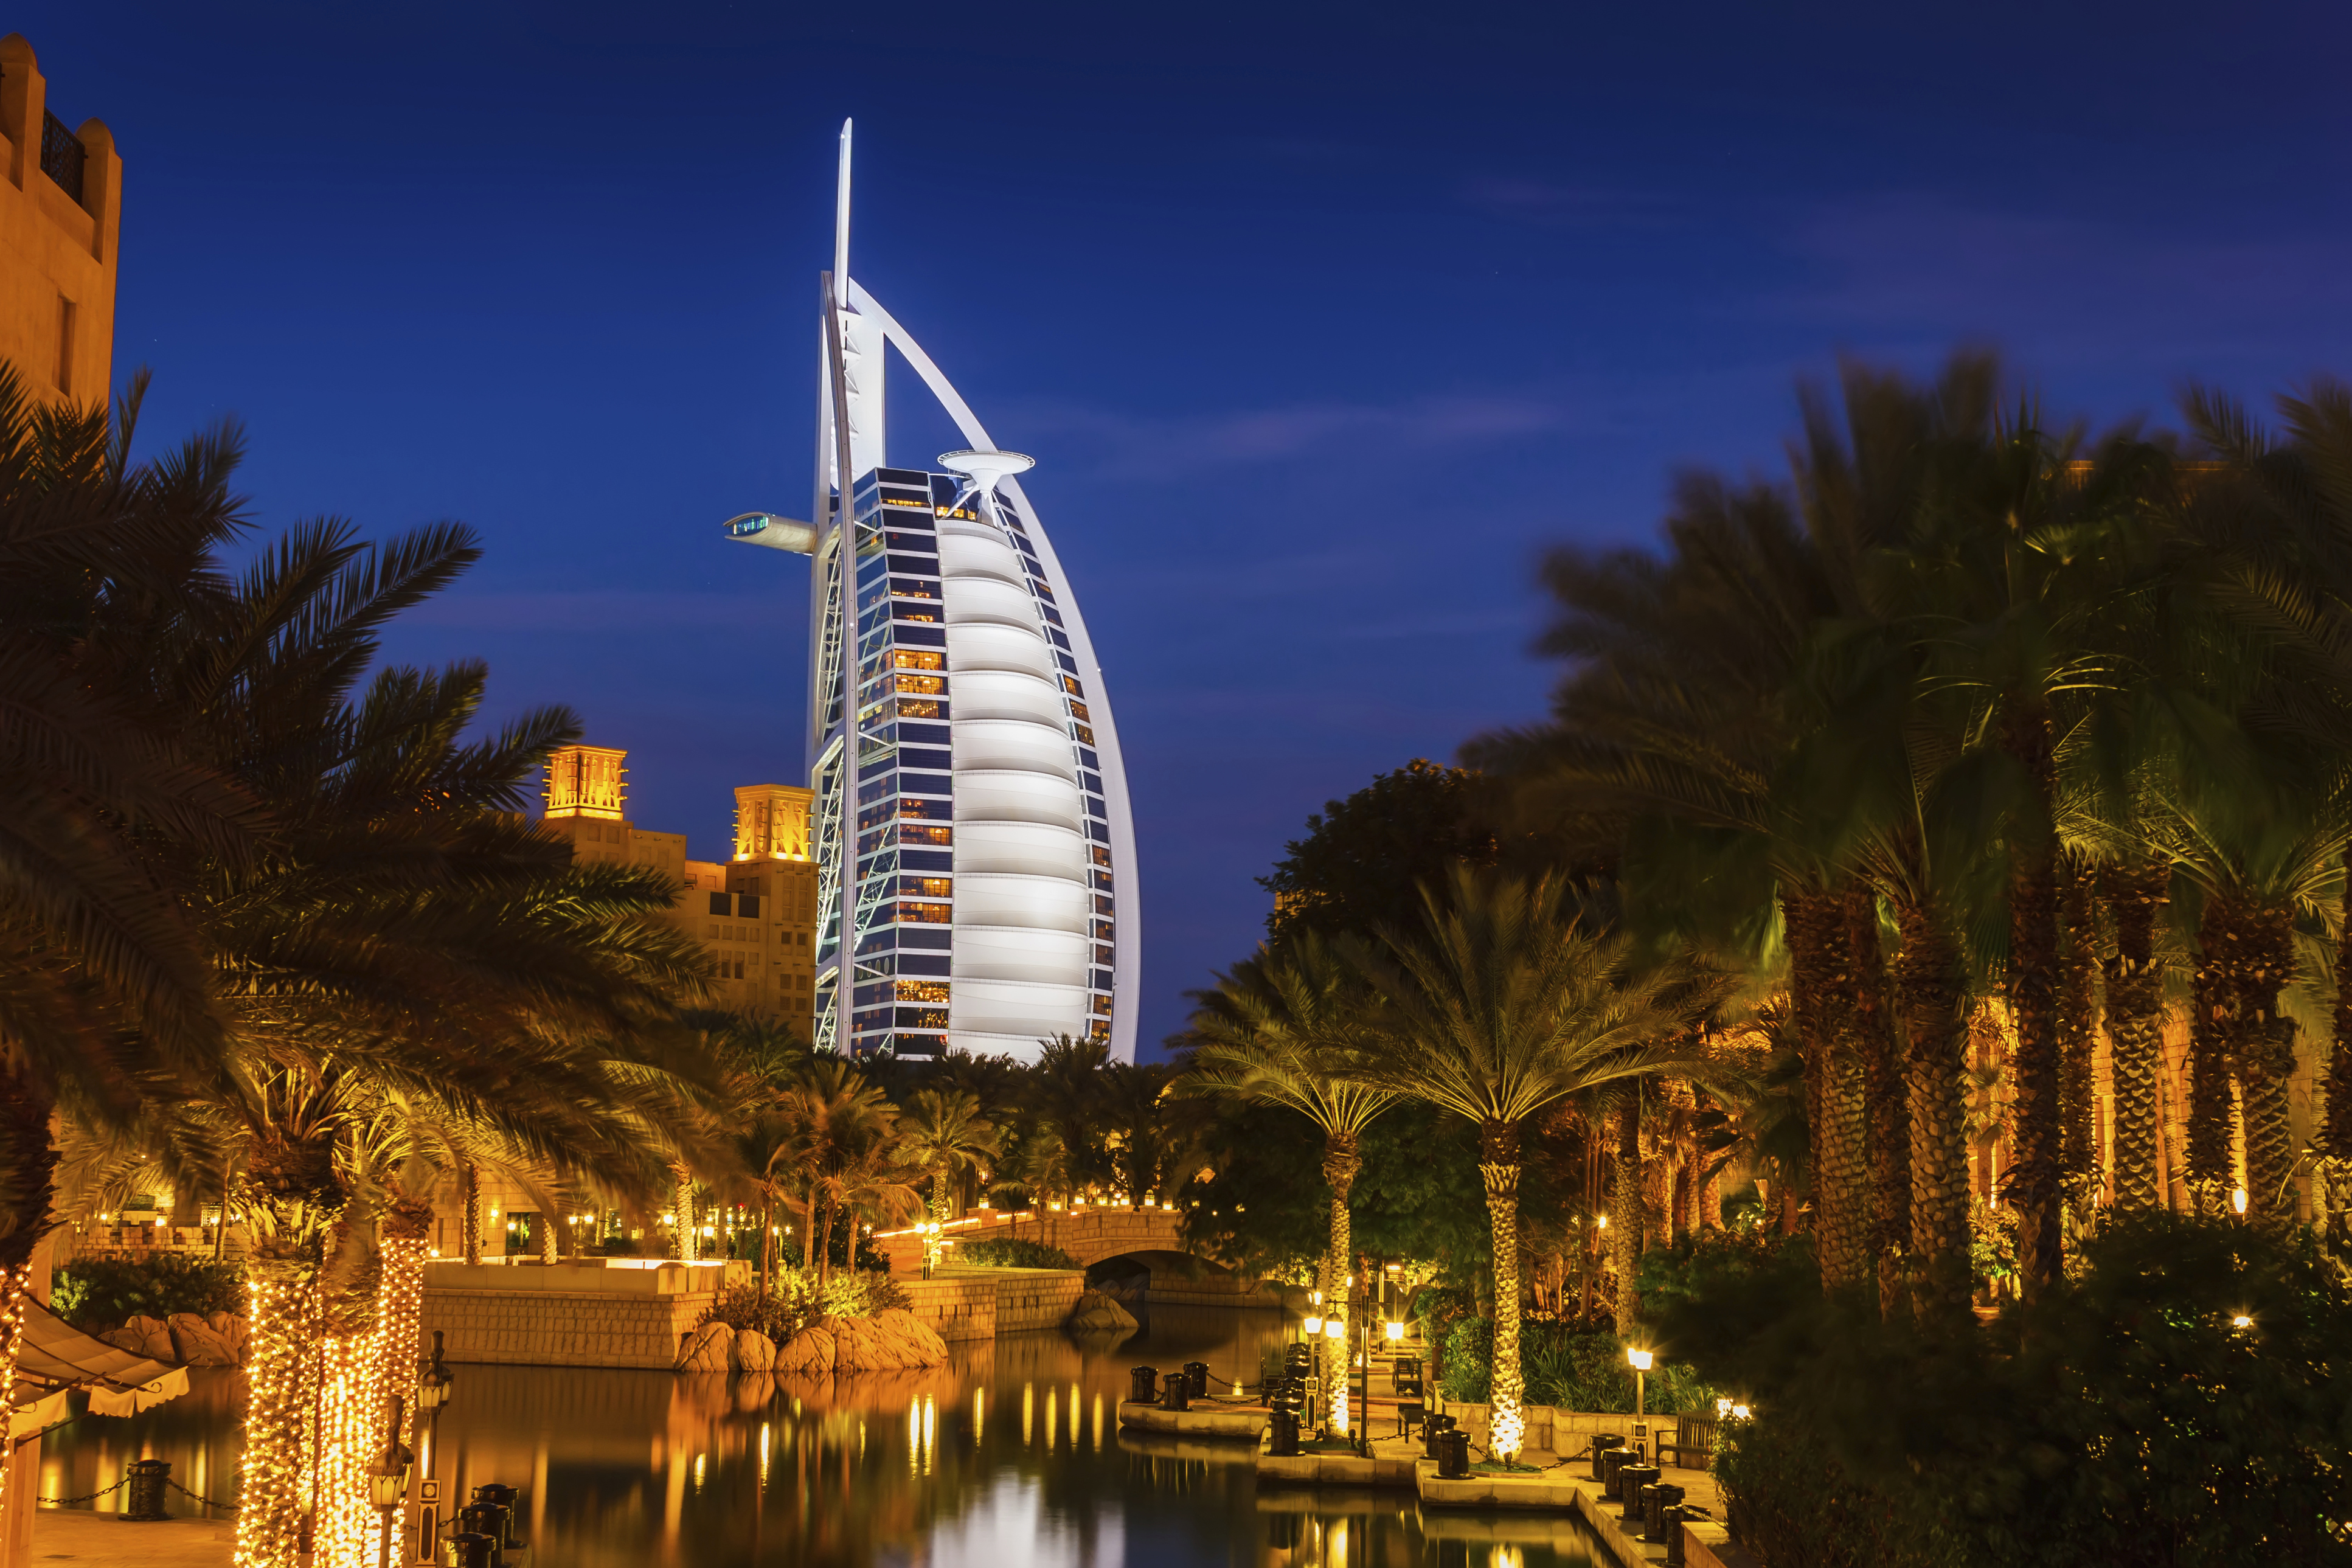 D Exhibition Jbr : Top attractions and things to do in dubai skyscanner s travel